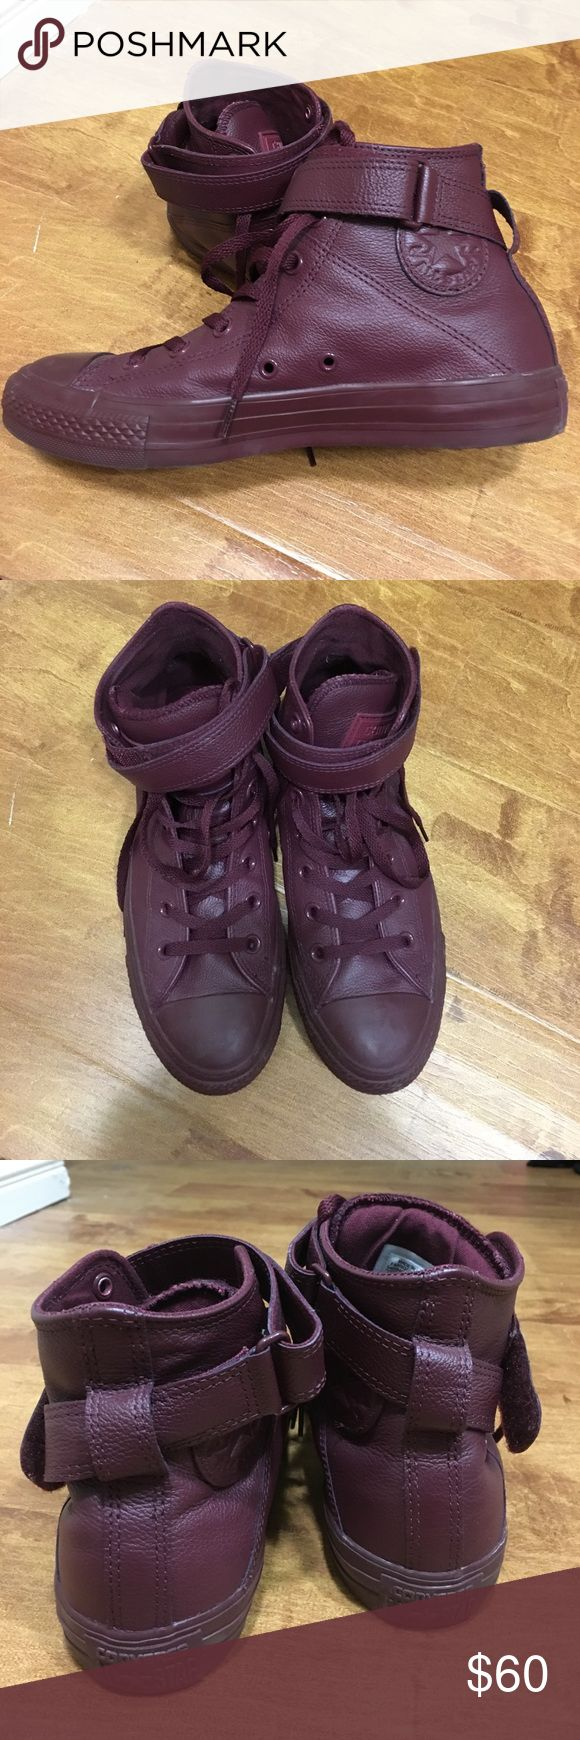 Maroon leather Converse high tops Women's converse high tops - Leather in a maroon/wine color. Very lightly worn. Converse Shoes Sneakers